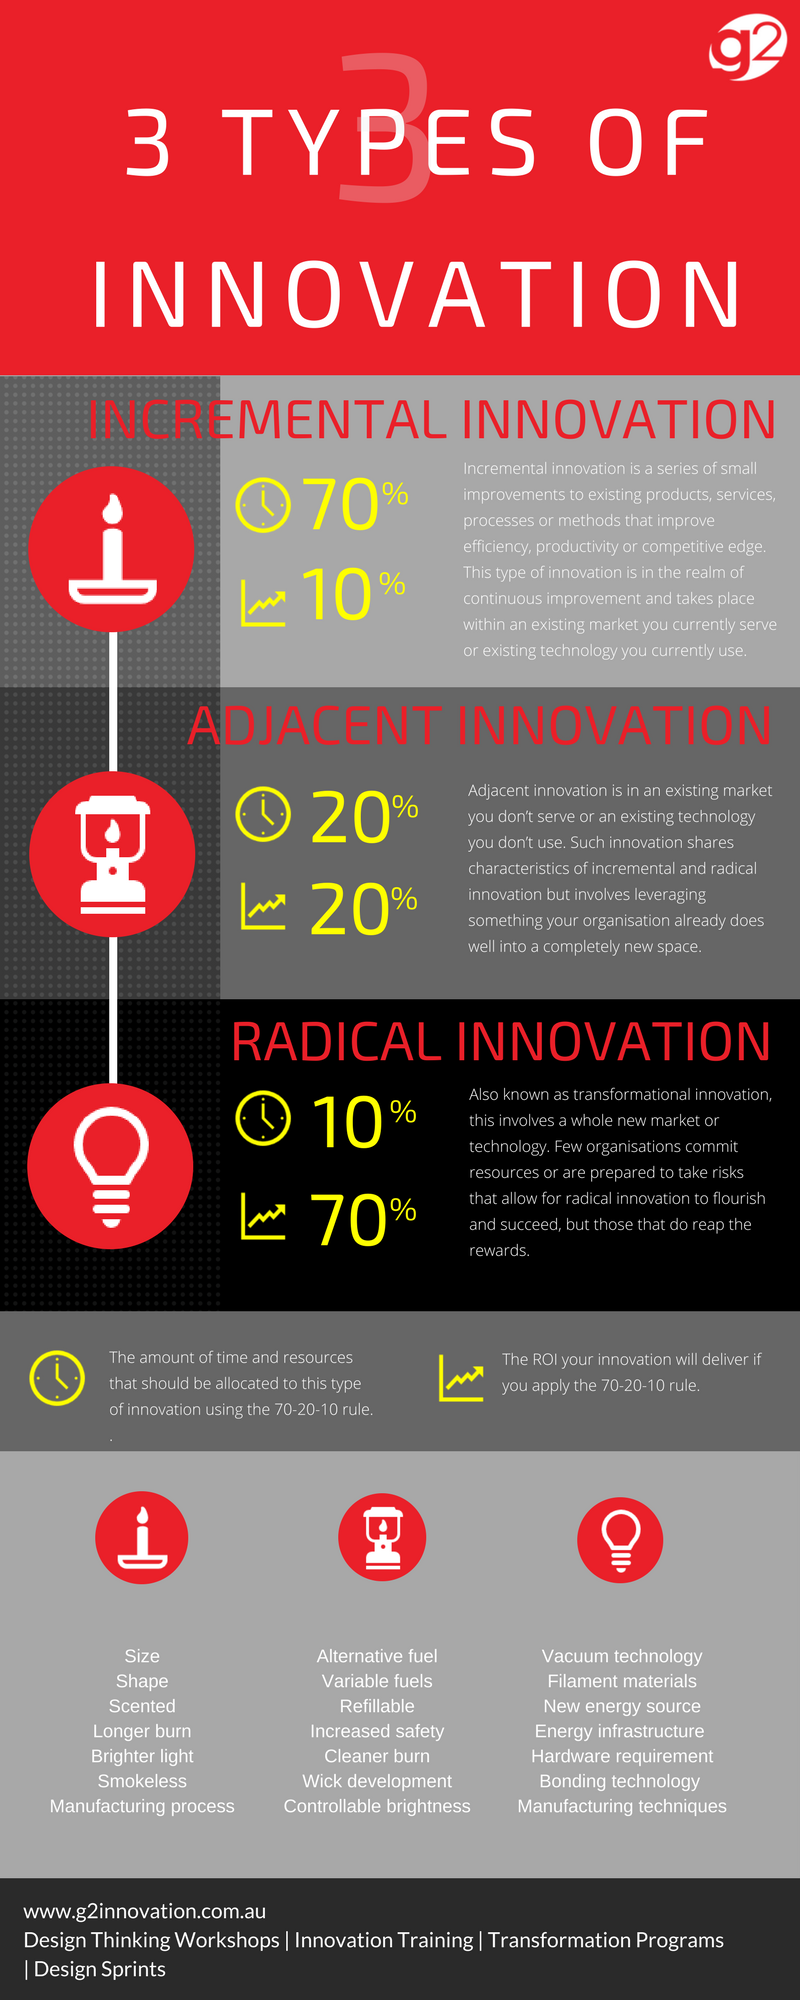 Click on the 3 Types of Innovation infographic for a printable PDF.